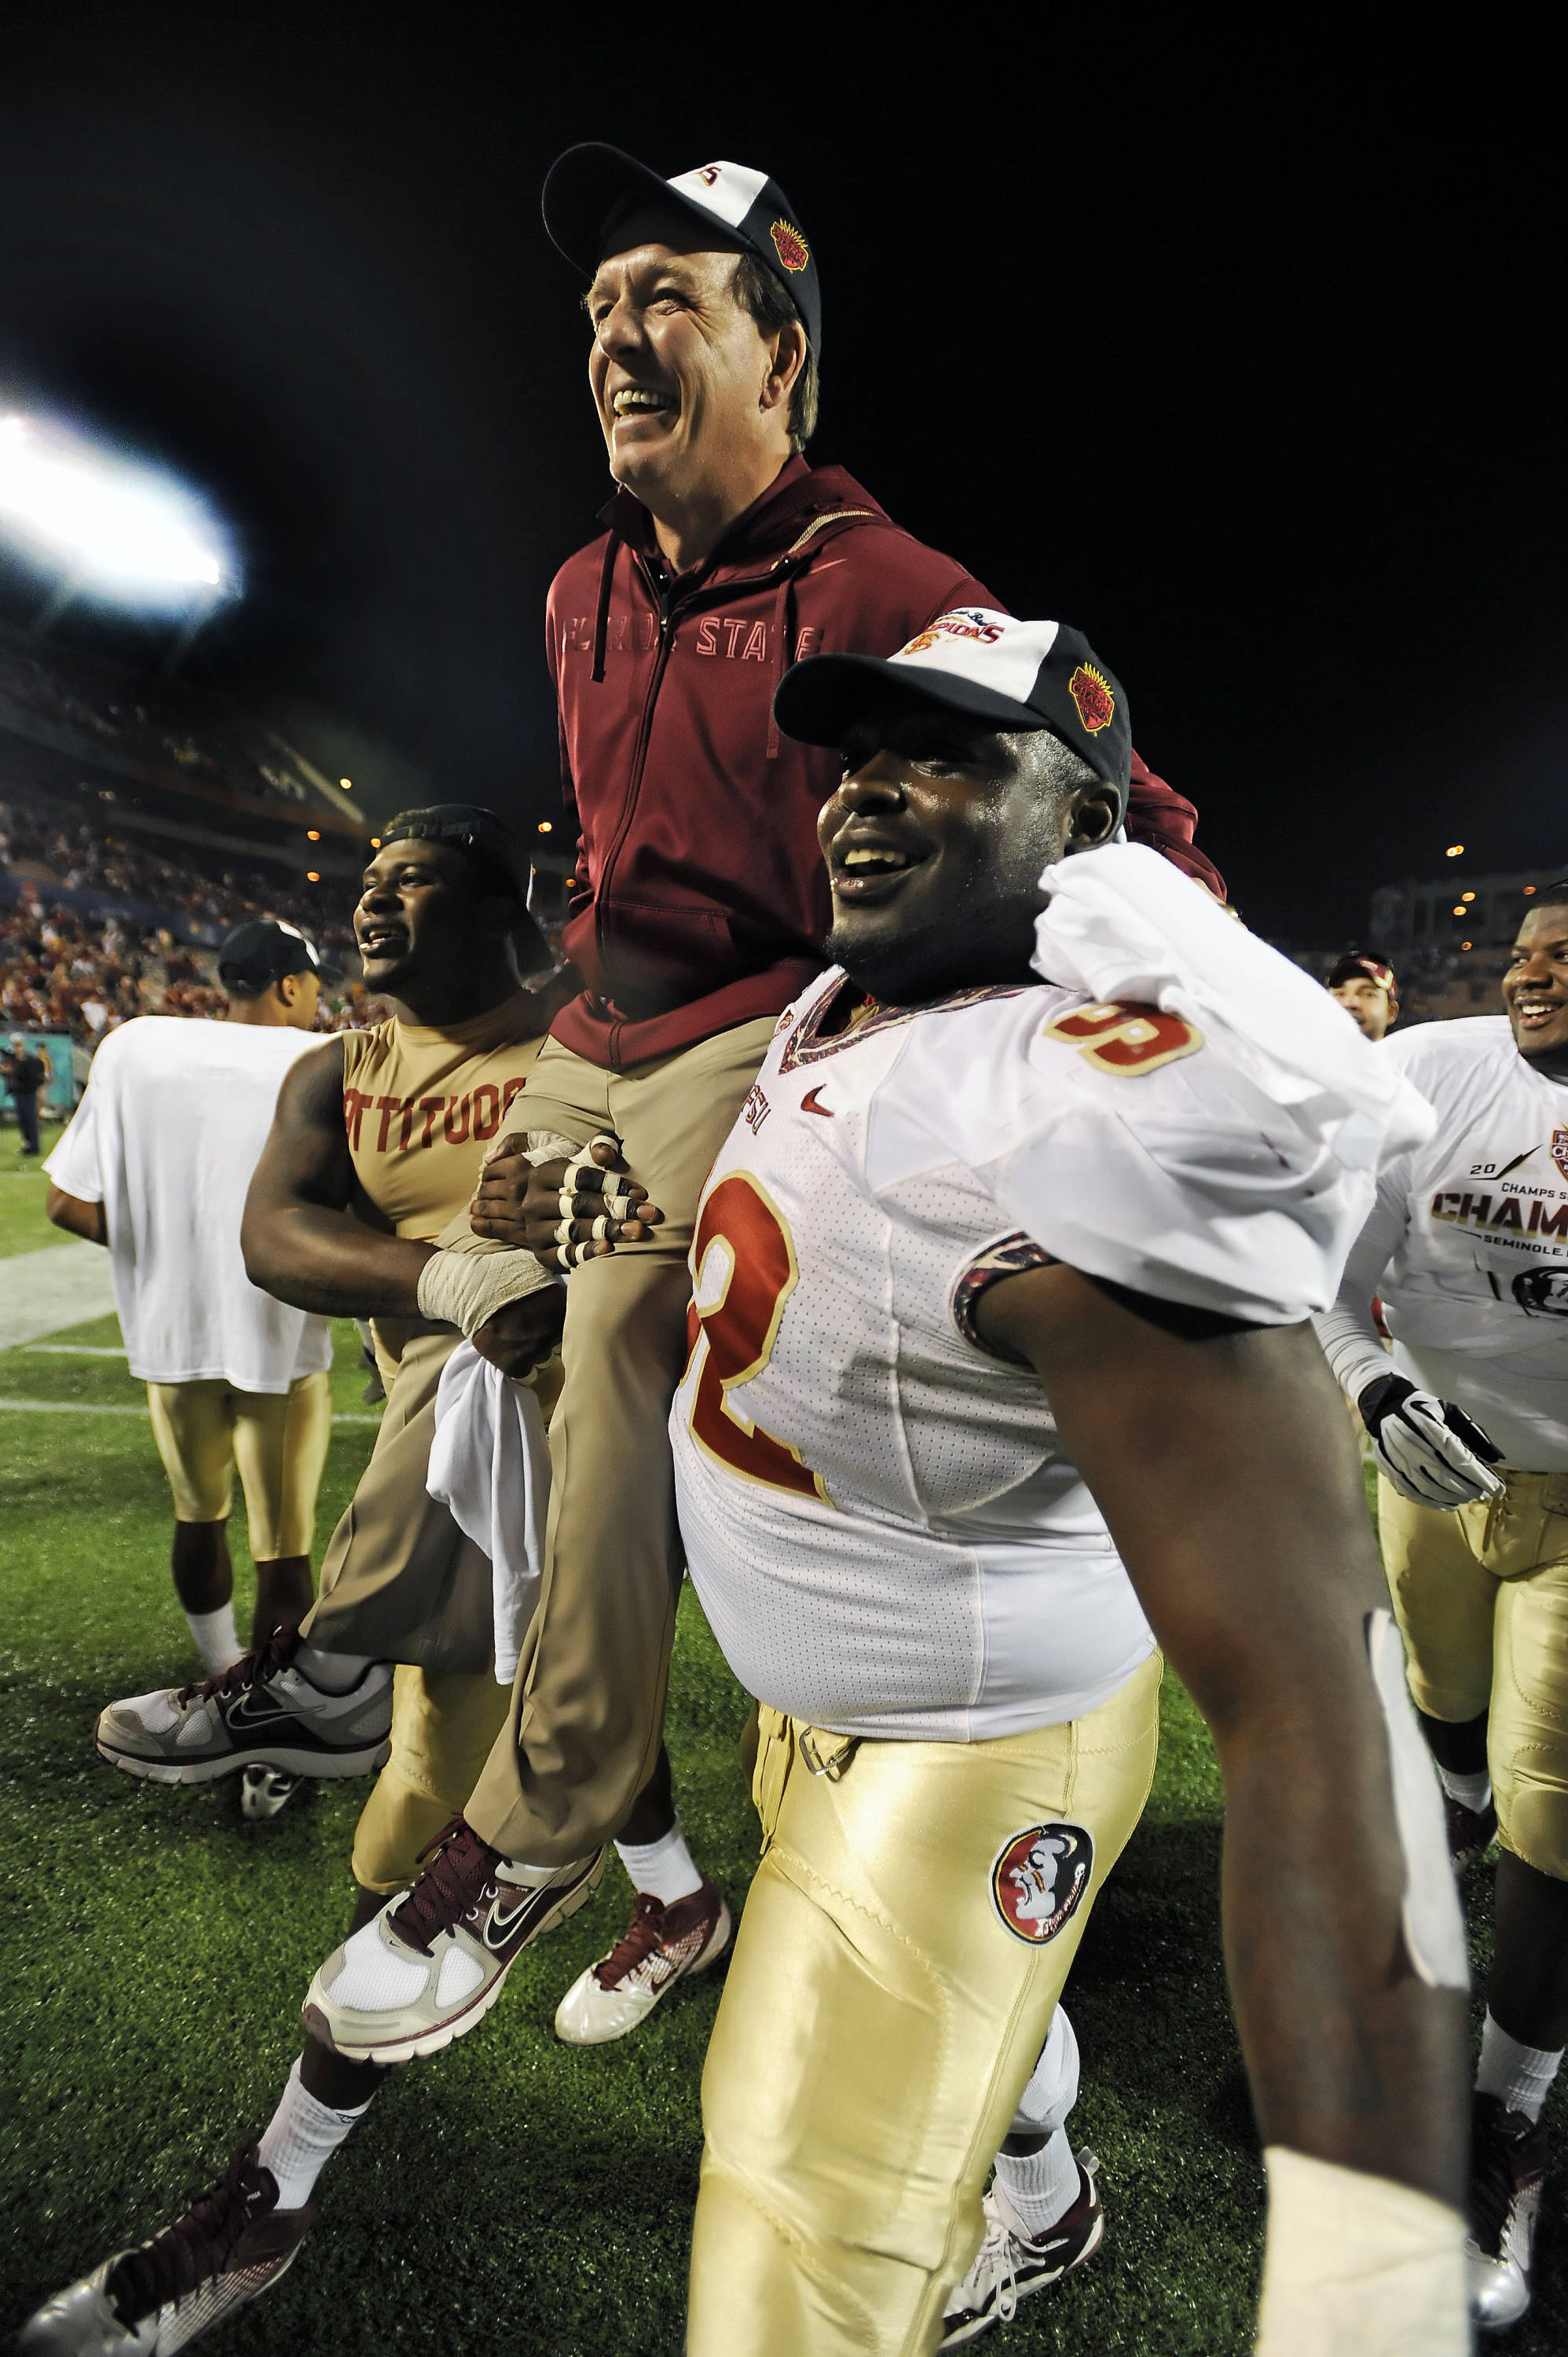 Jimbo Fisher celebrates with players after defeating Notre Dame in the 2011 Champs Sports Bowl.  It marked FSU's record 30th consecutive bowl game appearance.